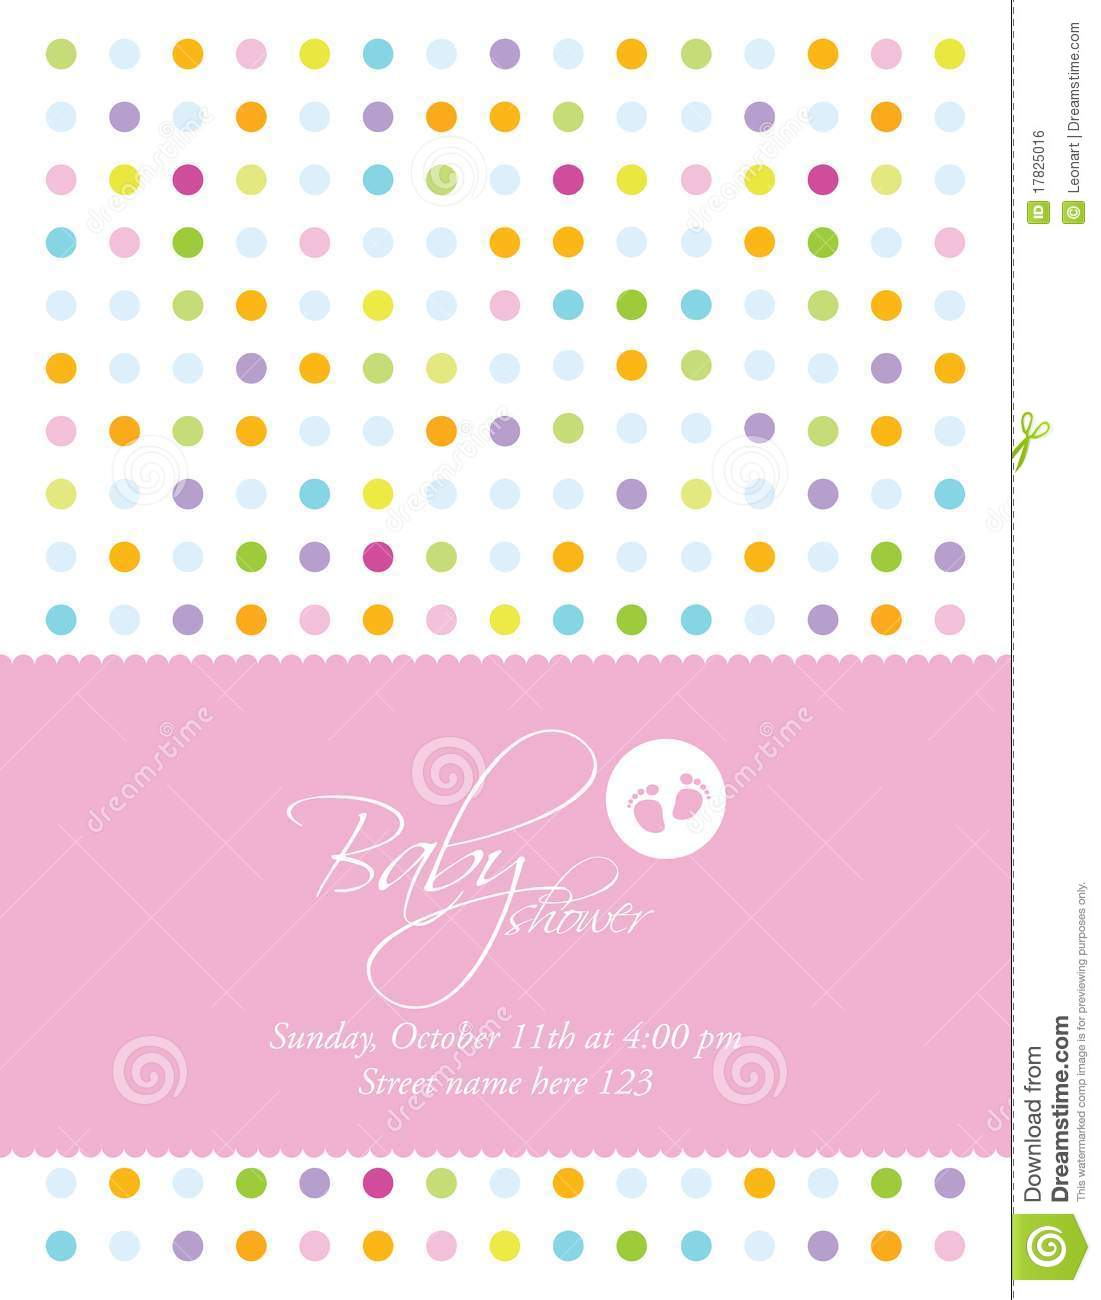 Baby Shower Card Template Royalty Free Stock Image - Image: 17825016